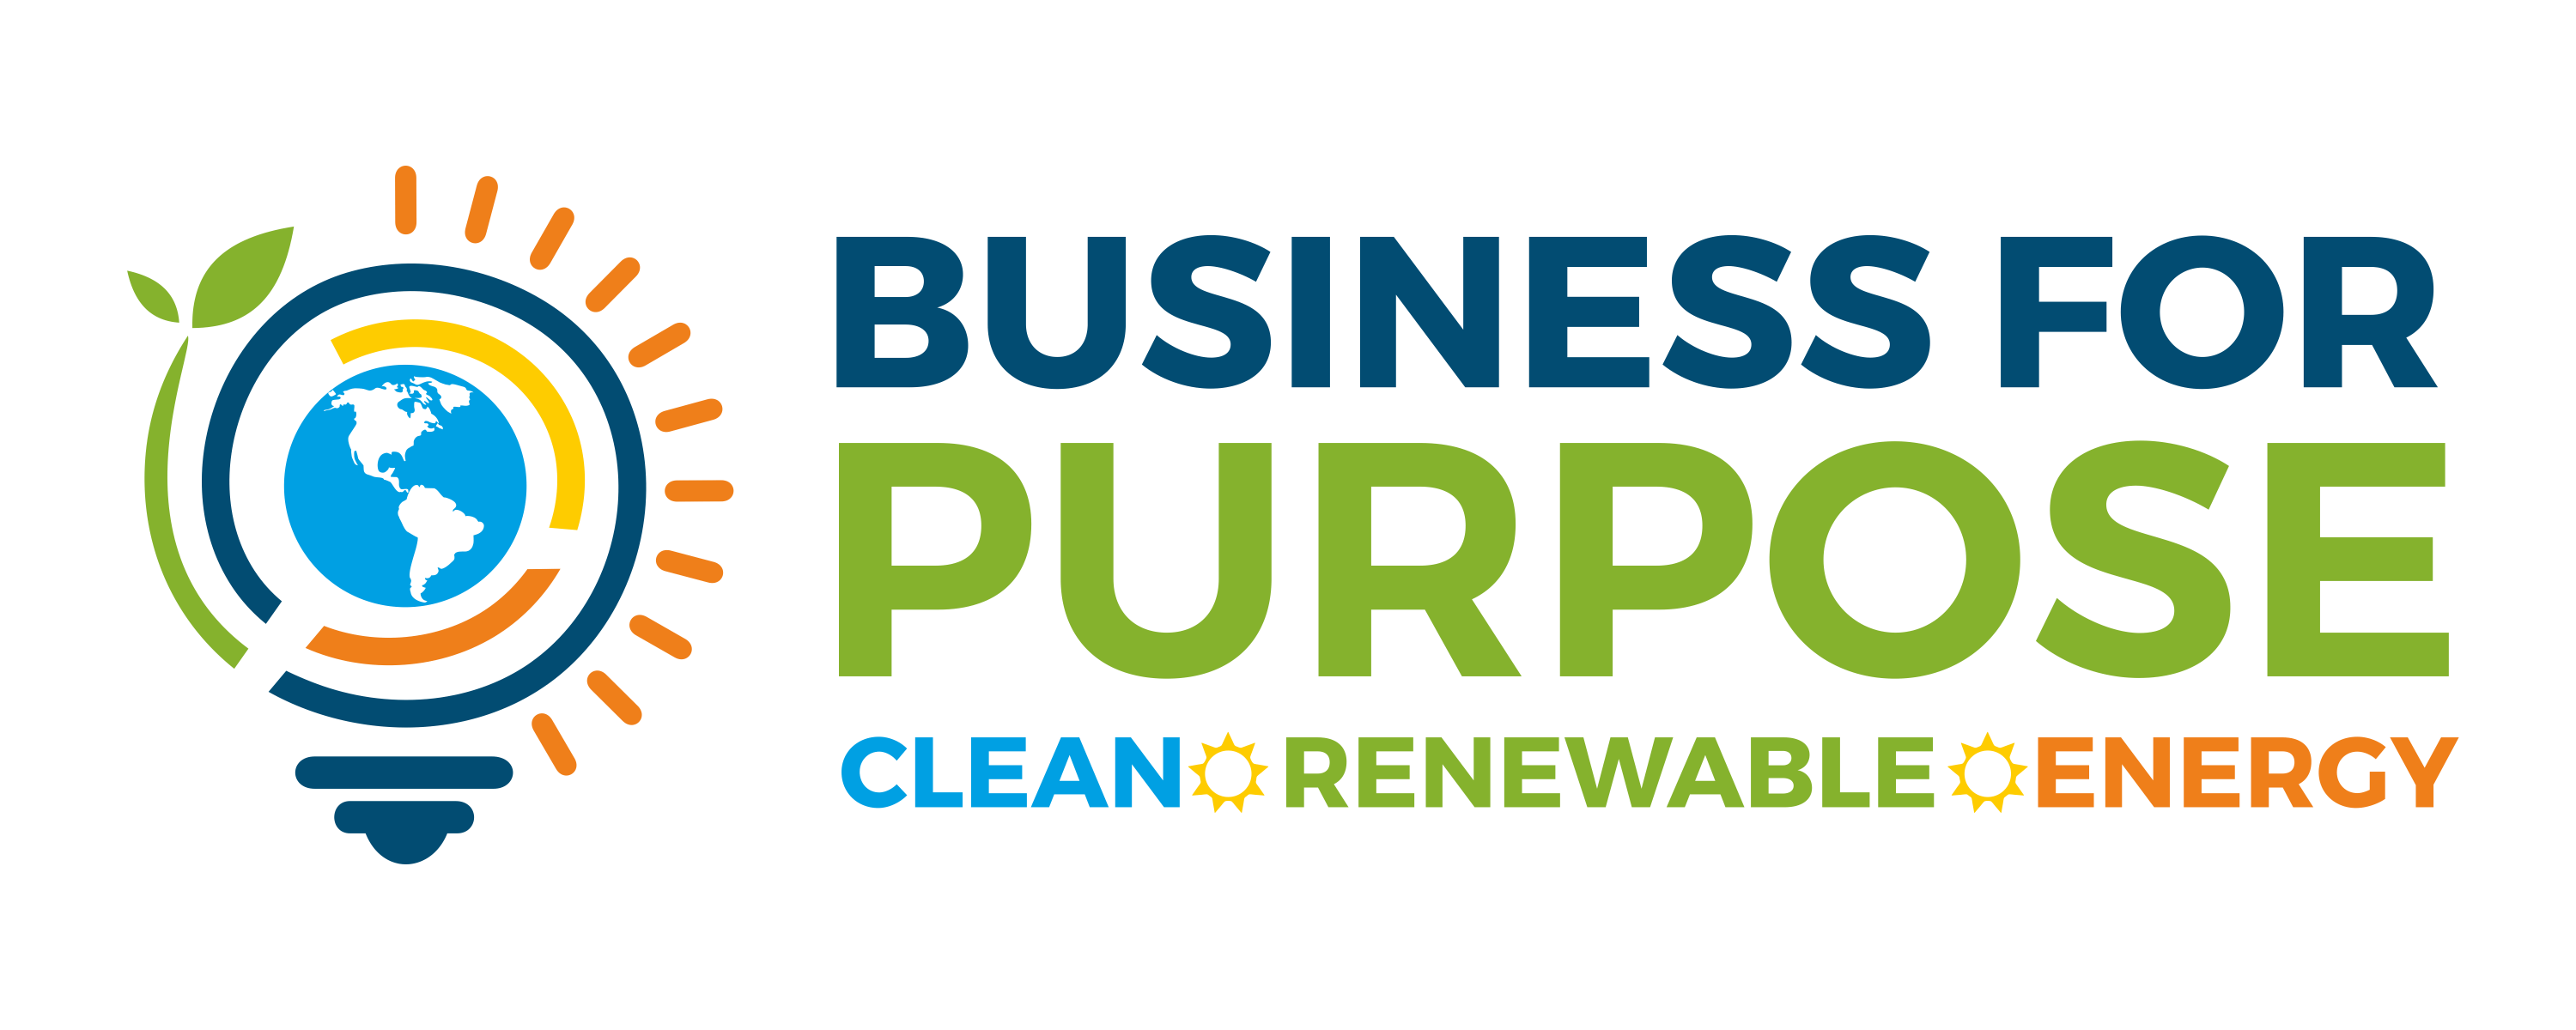 Business For Purpose | Powur Network